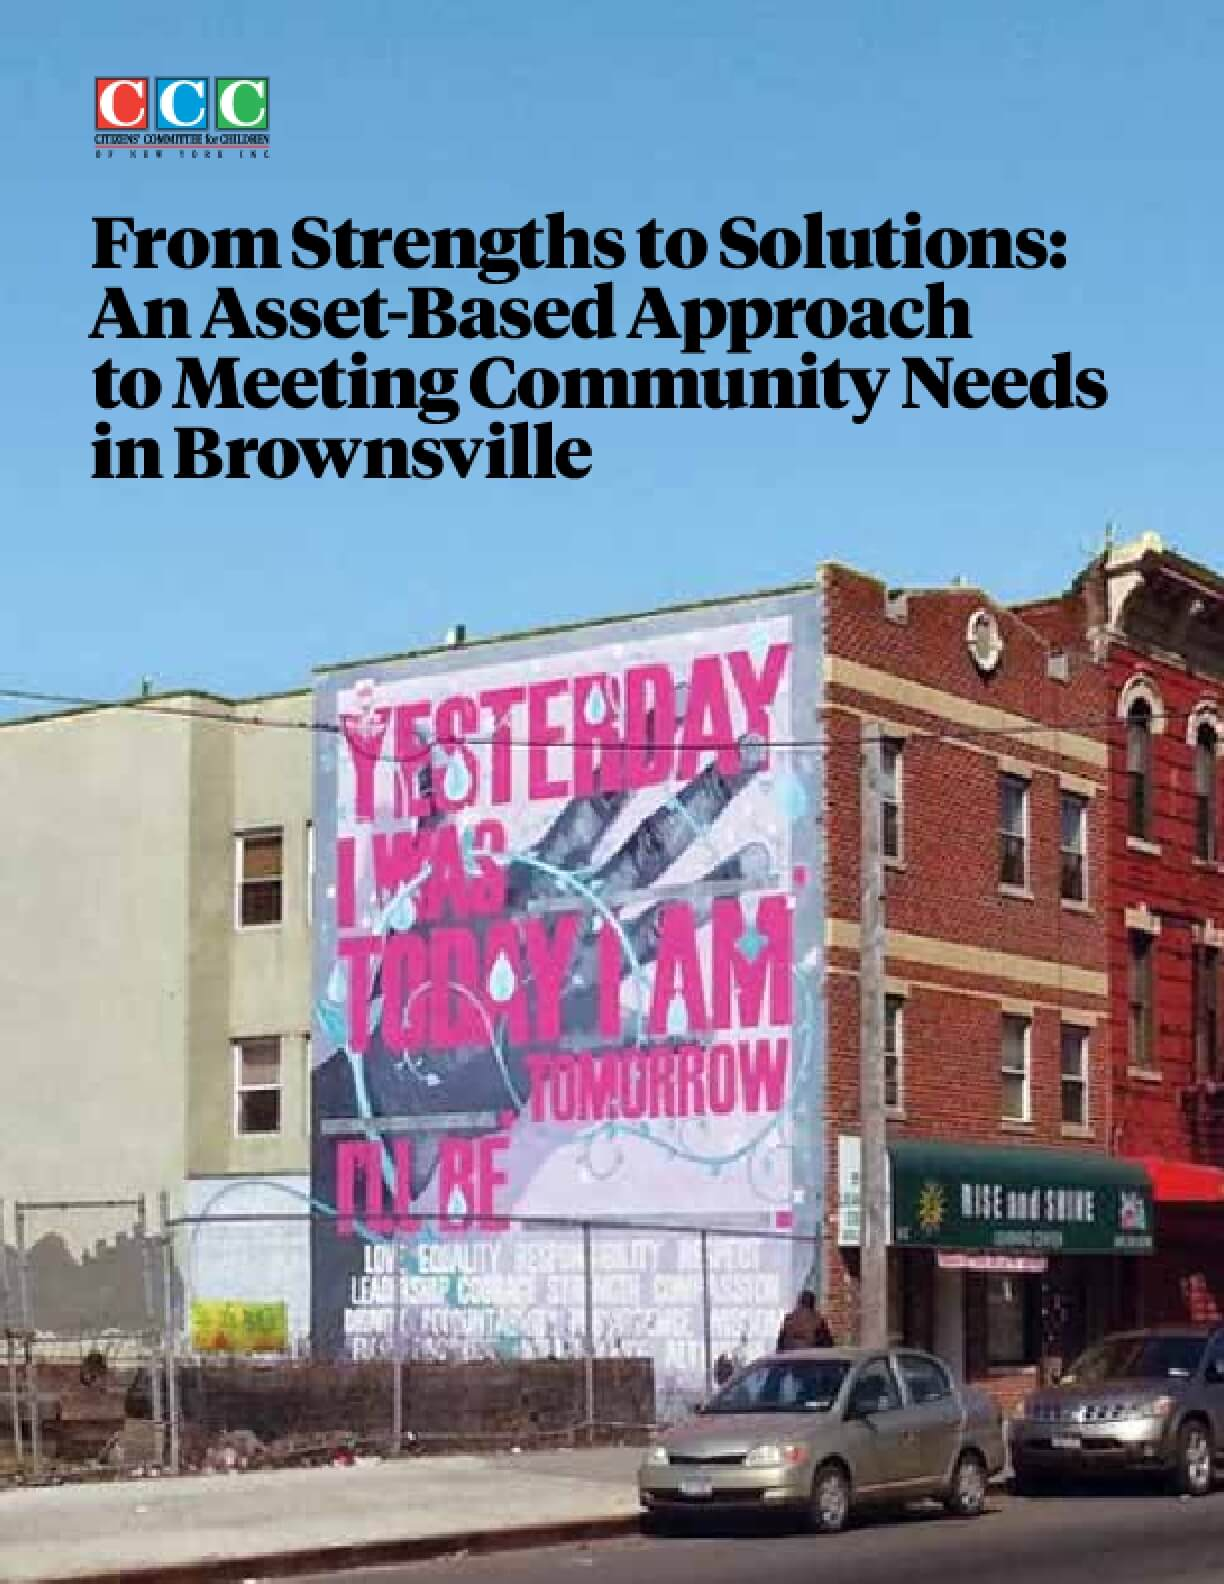 From Strengths to Solutions: An Asset-Based Approach to Meeting Community Needs in Brownsville